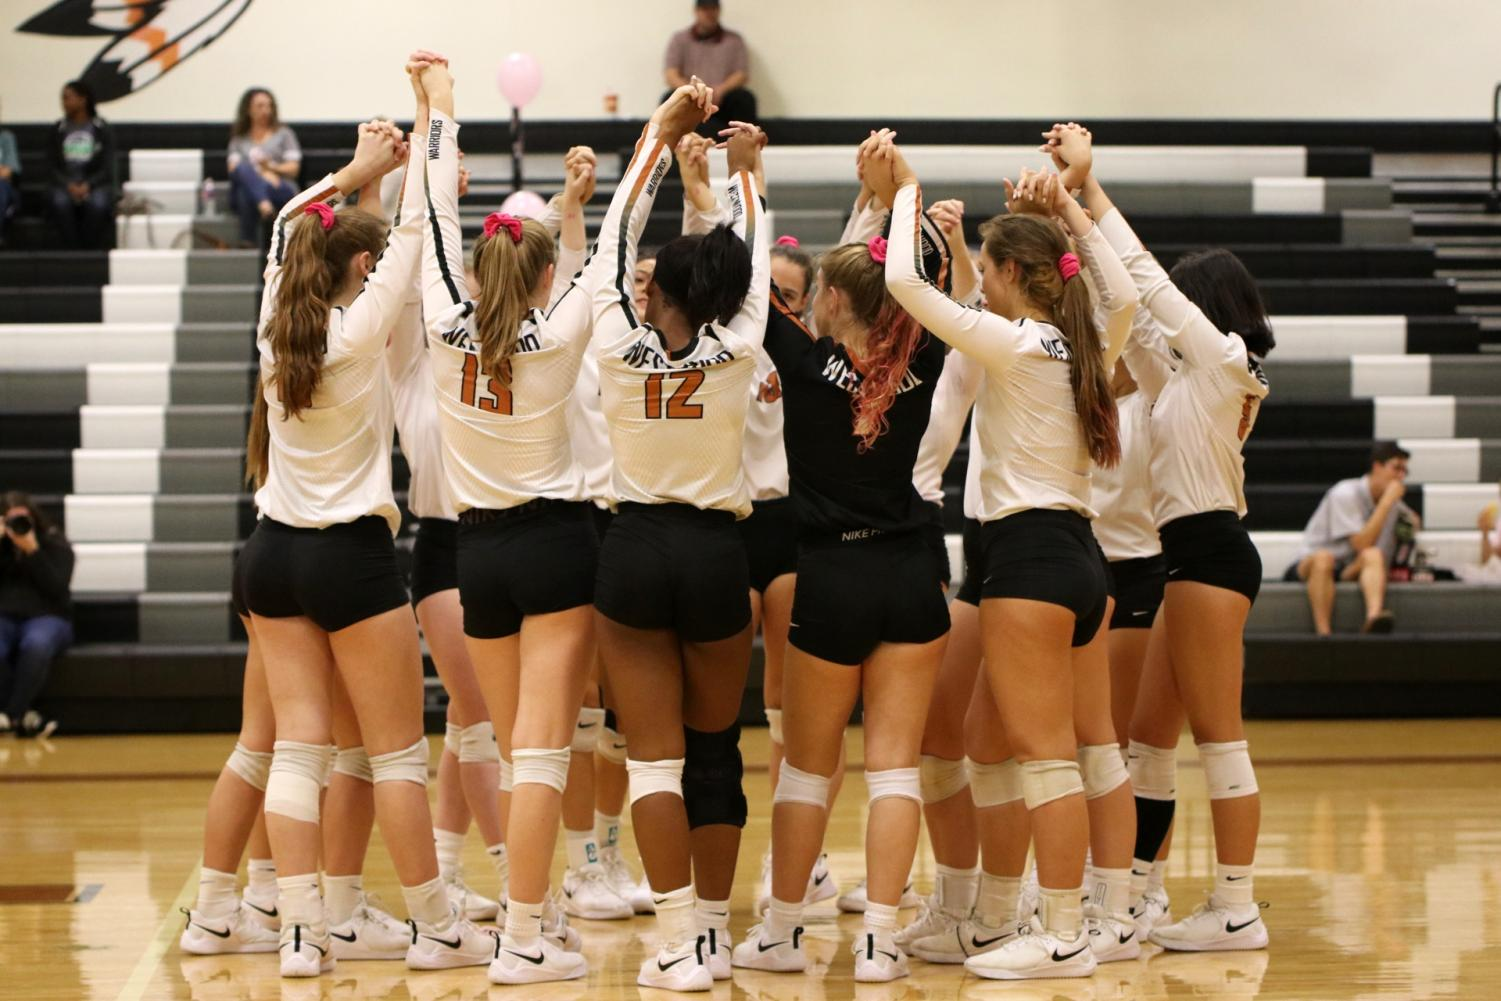 The+Lady+Warriors+raise+their+arms+in+their+pre-game+ritual.+The+Lady+Warriors+played+the+McNeil+Mavericks+in+the+Dig+Pink+game+which+raised+money+for+breast+cancer+research.